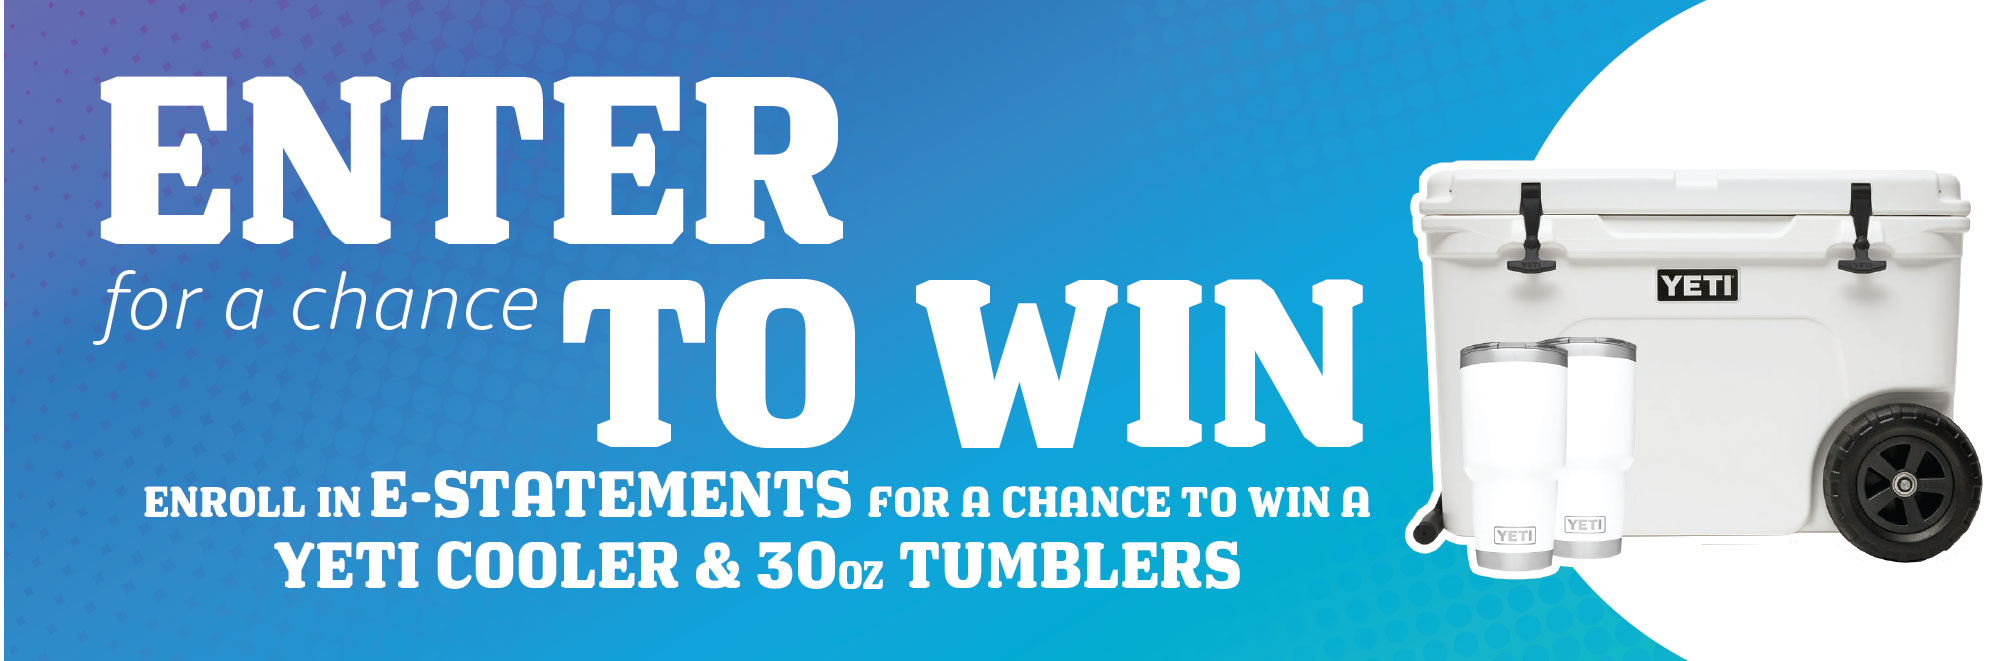 Sign-up for our FREE eStatement service this month and you'll be entered to win a Yeti coolor and 2 Yeti tumblers.